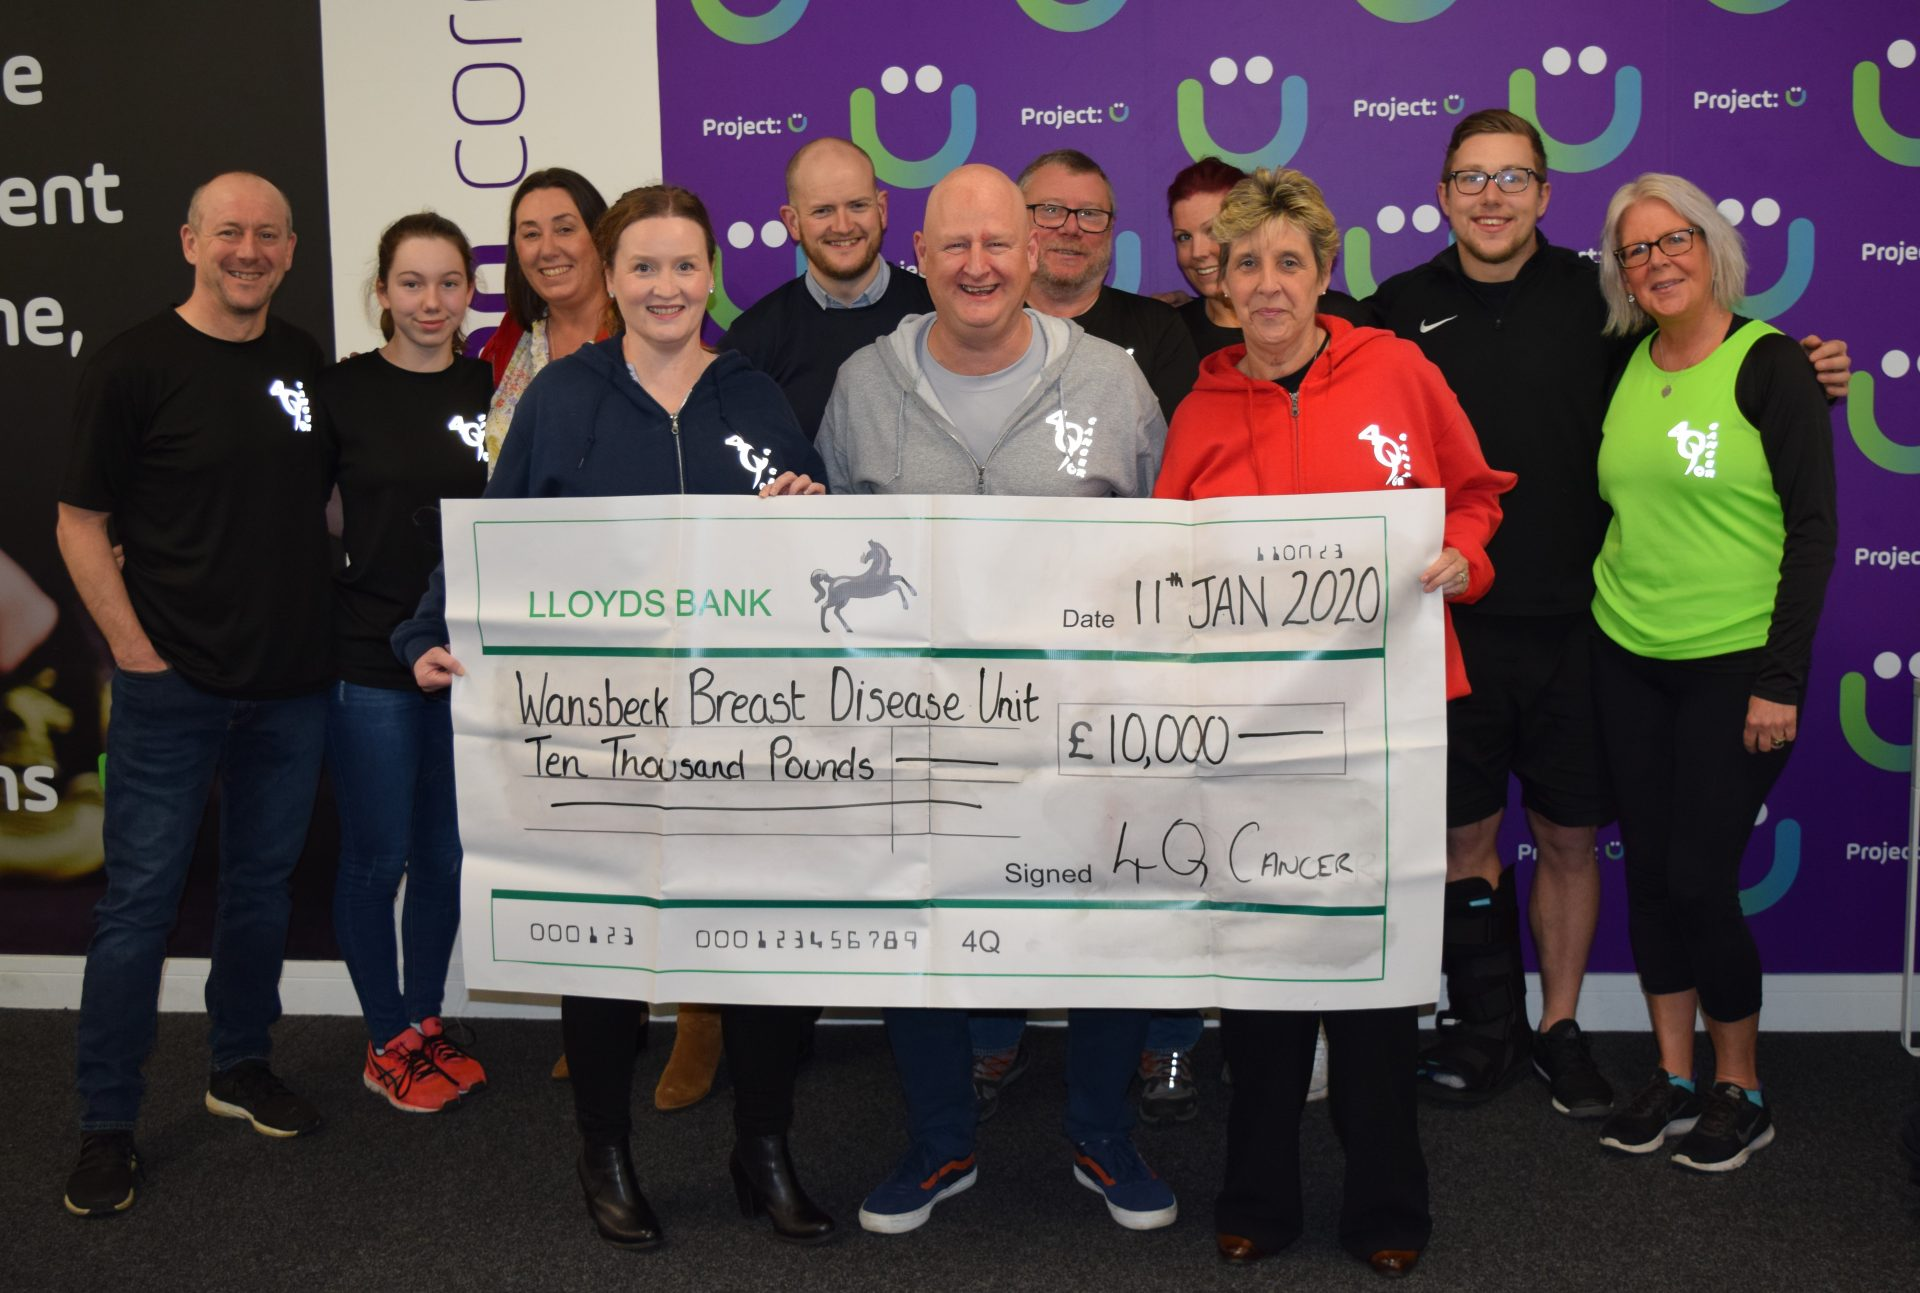 £10,000 raised to support patients at Wansbeck General Hospital